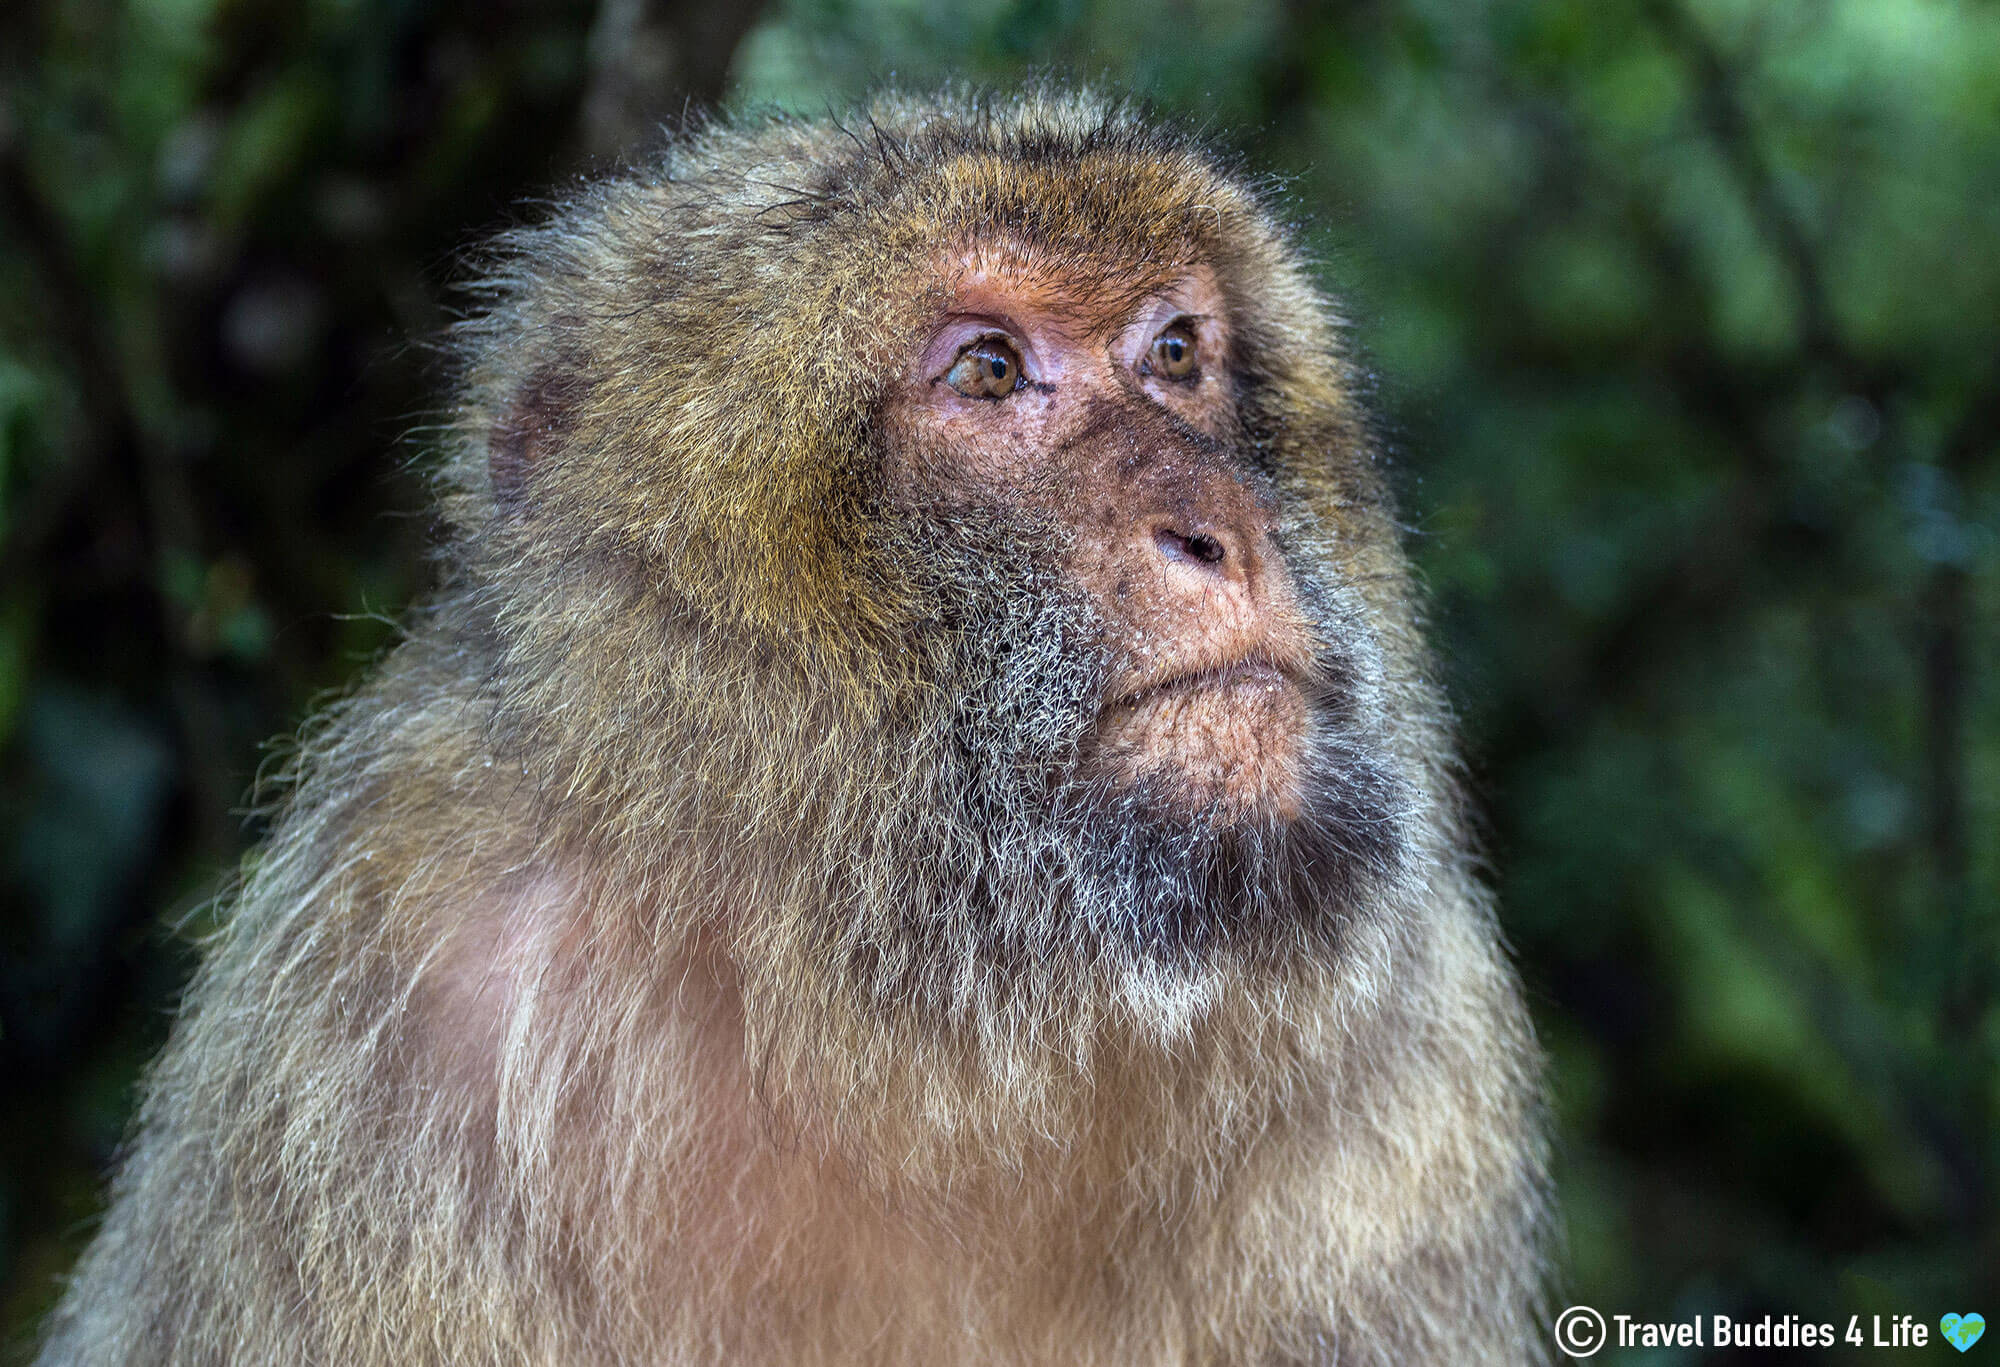 A Free Roaming Forest of Macaques Monkeys in Southern France, Europe